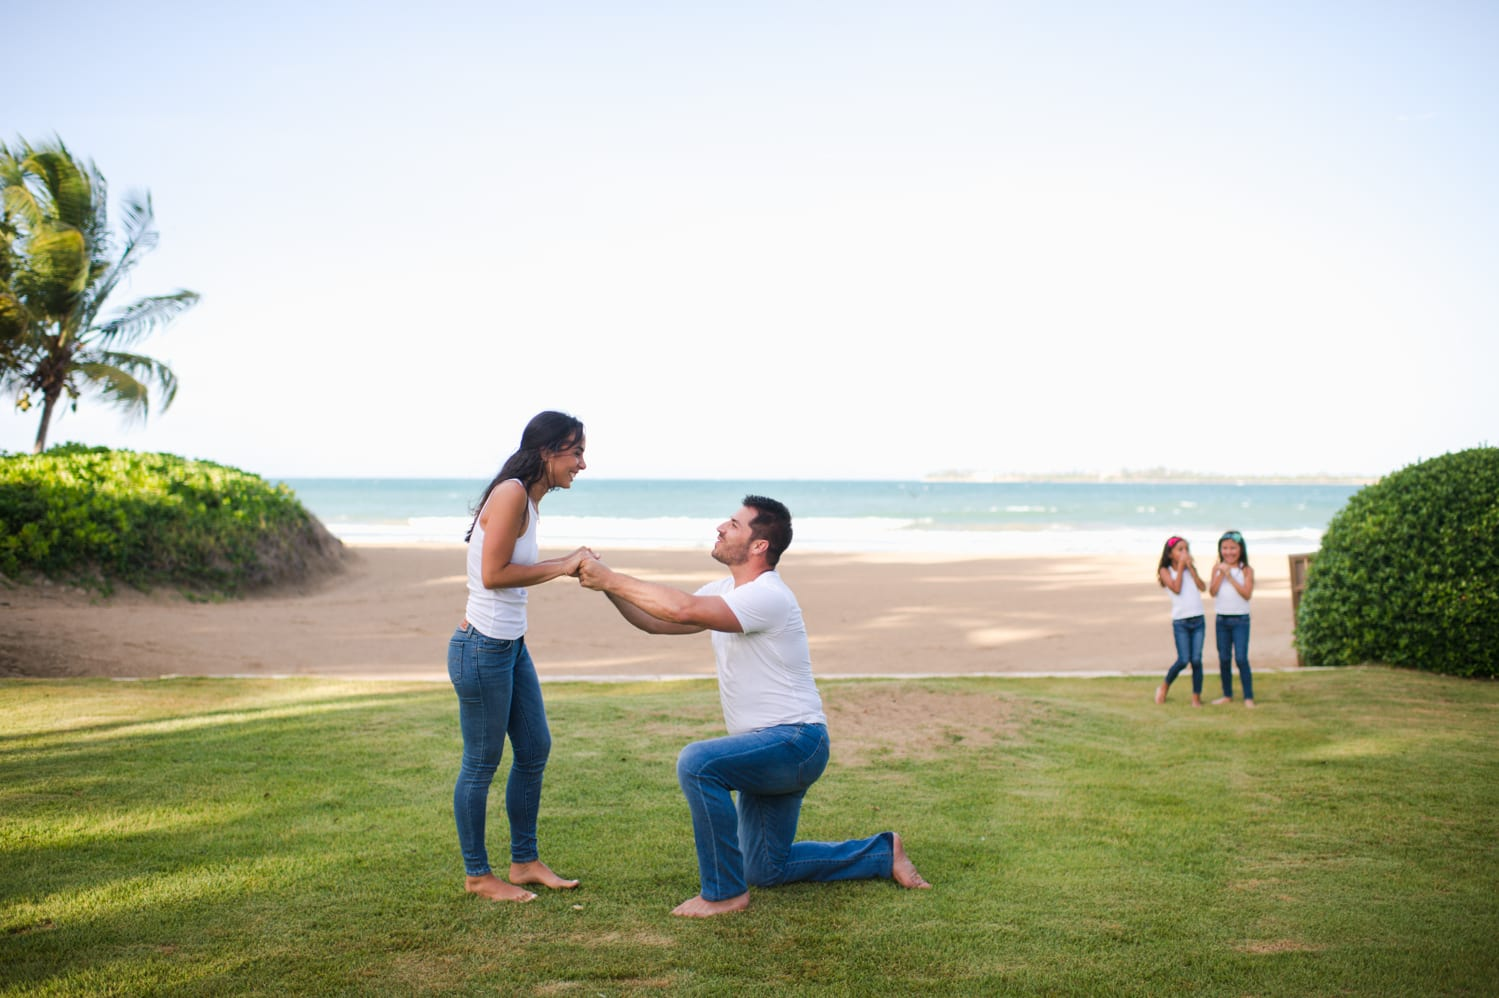 family session and marriage proposal at St Regis Bahia Beach Resort by Puerto Rico wedding photographer Camille Fontanez